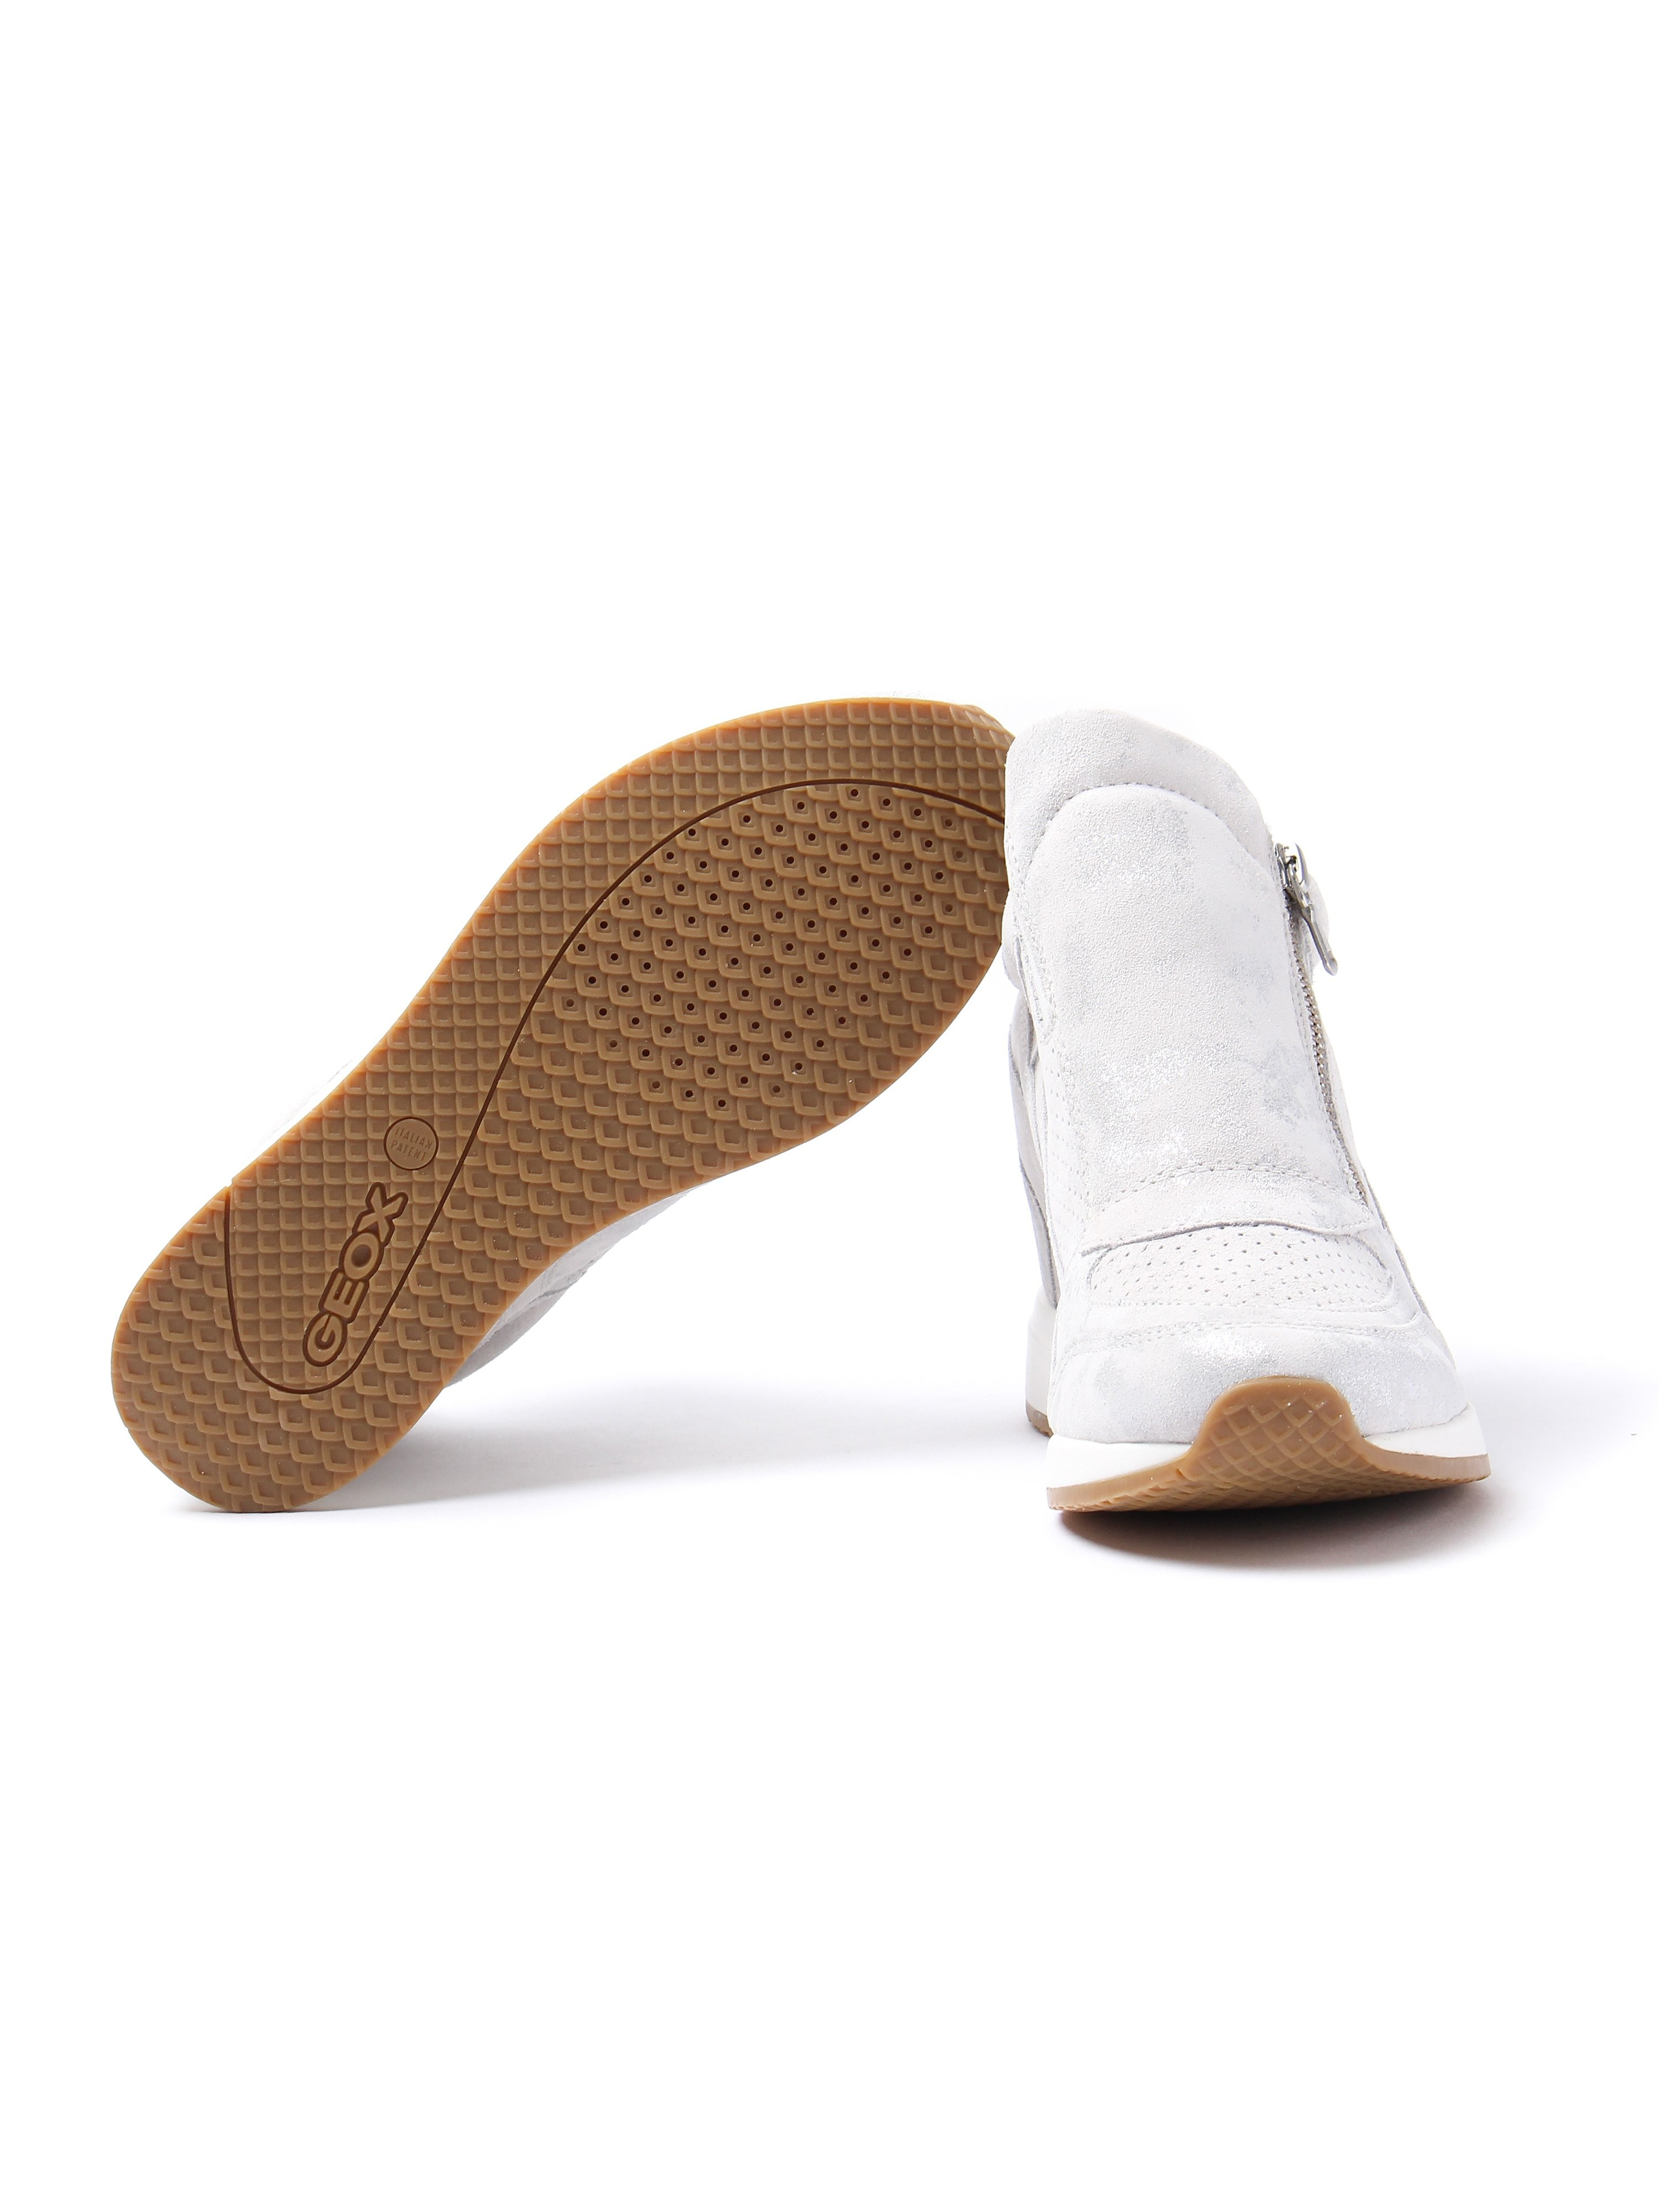 Geox Women's Nydame Suede Wedge Trainers - Off White